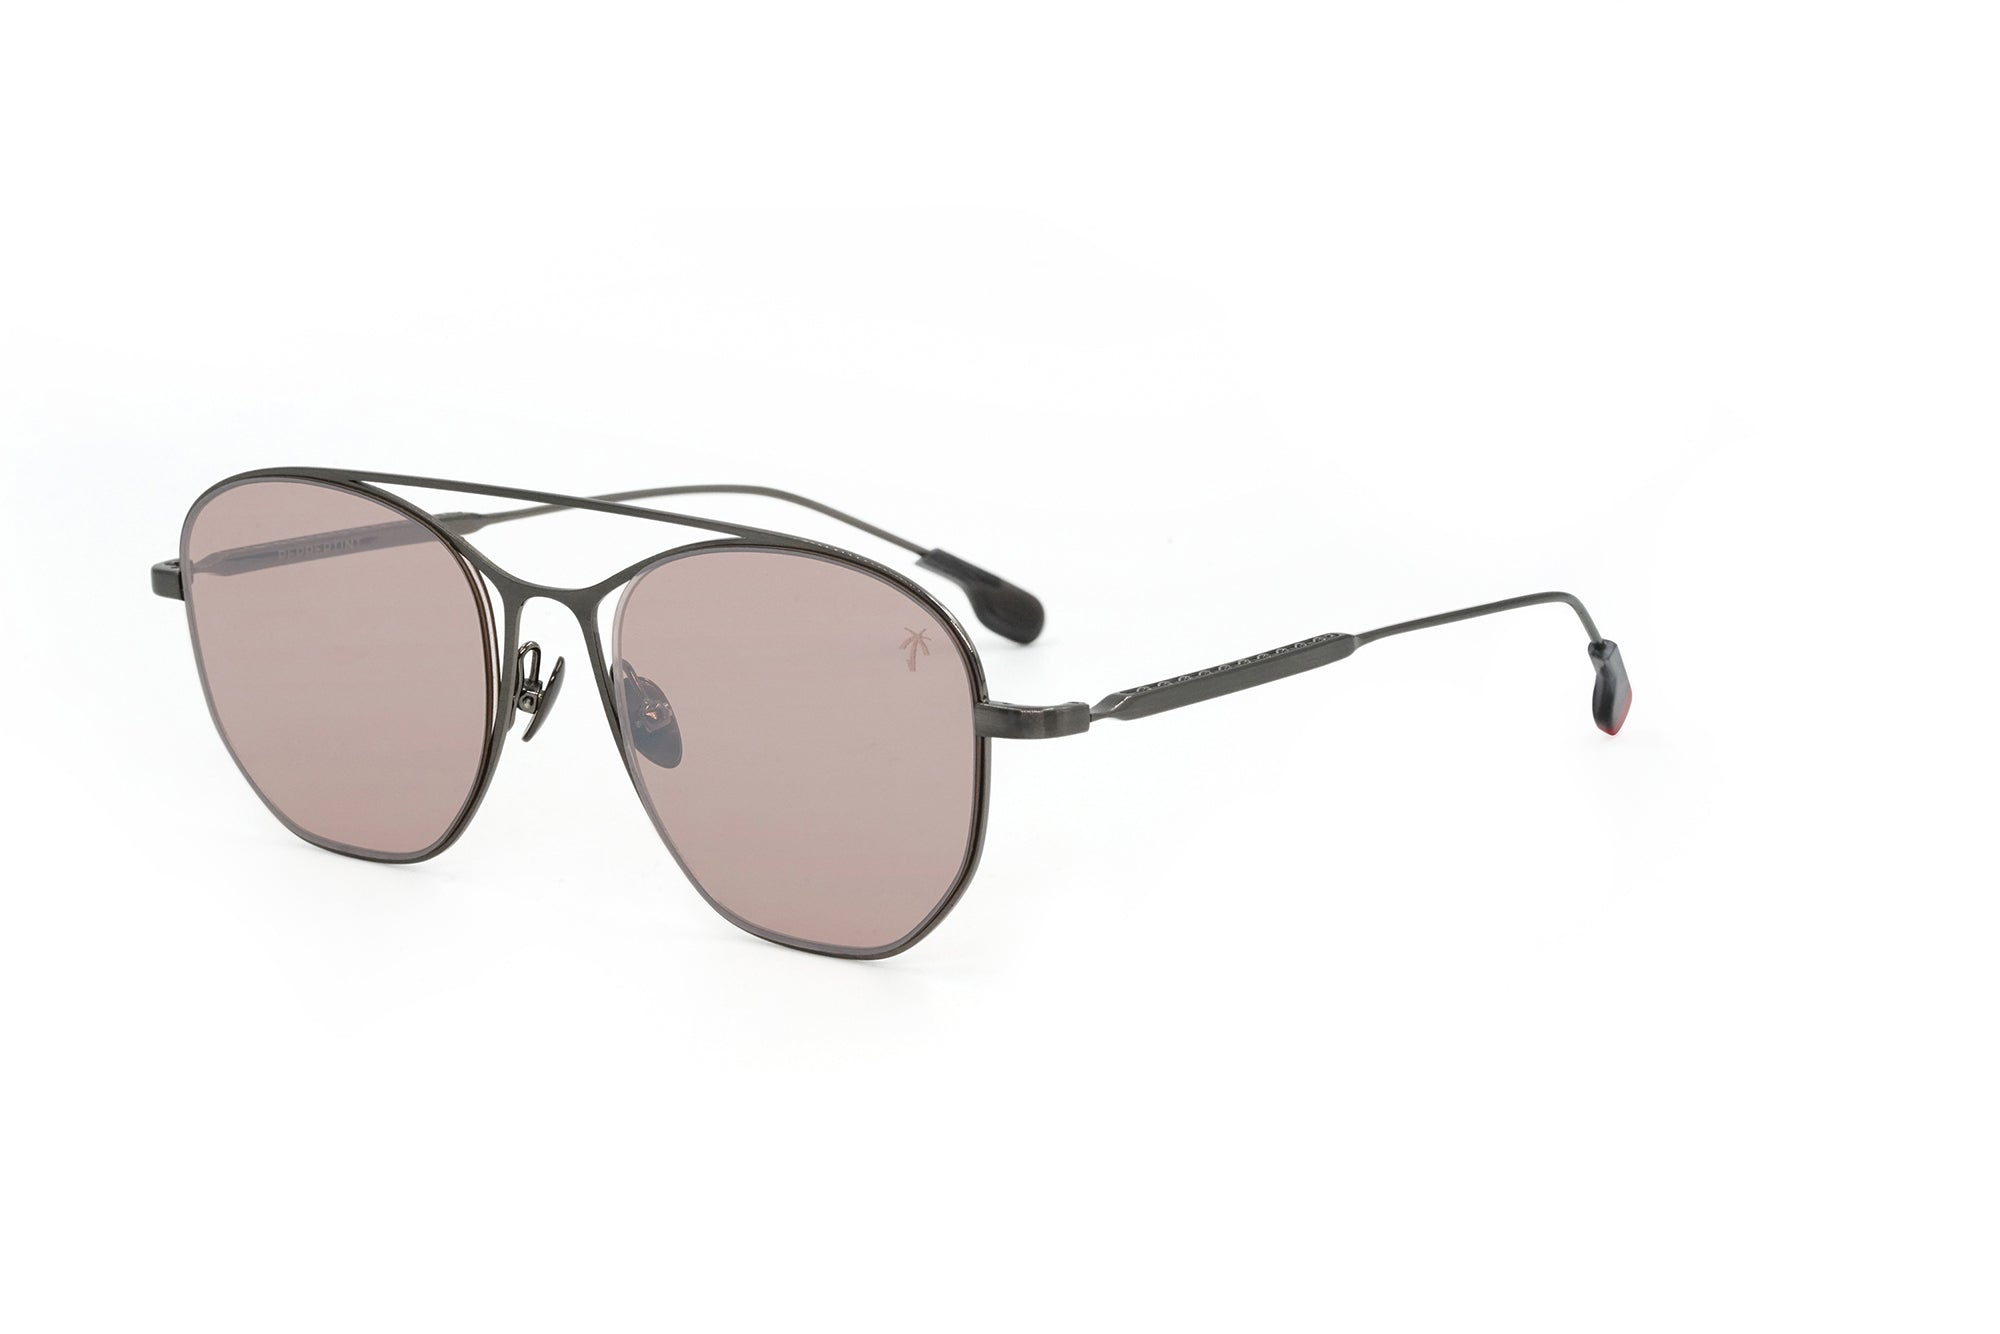 Mateo in pink Lens - Peppertint - Designer sunglasses